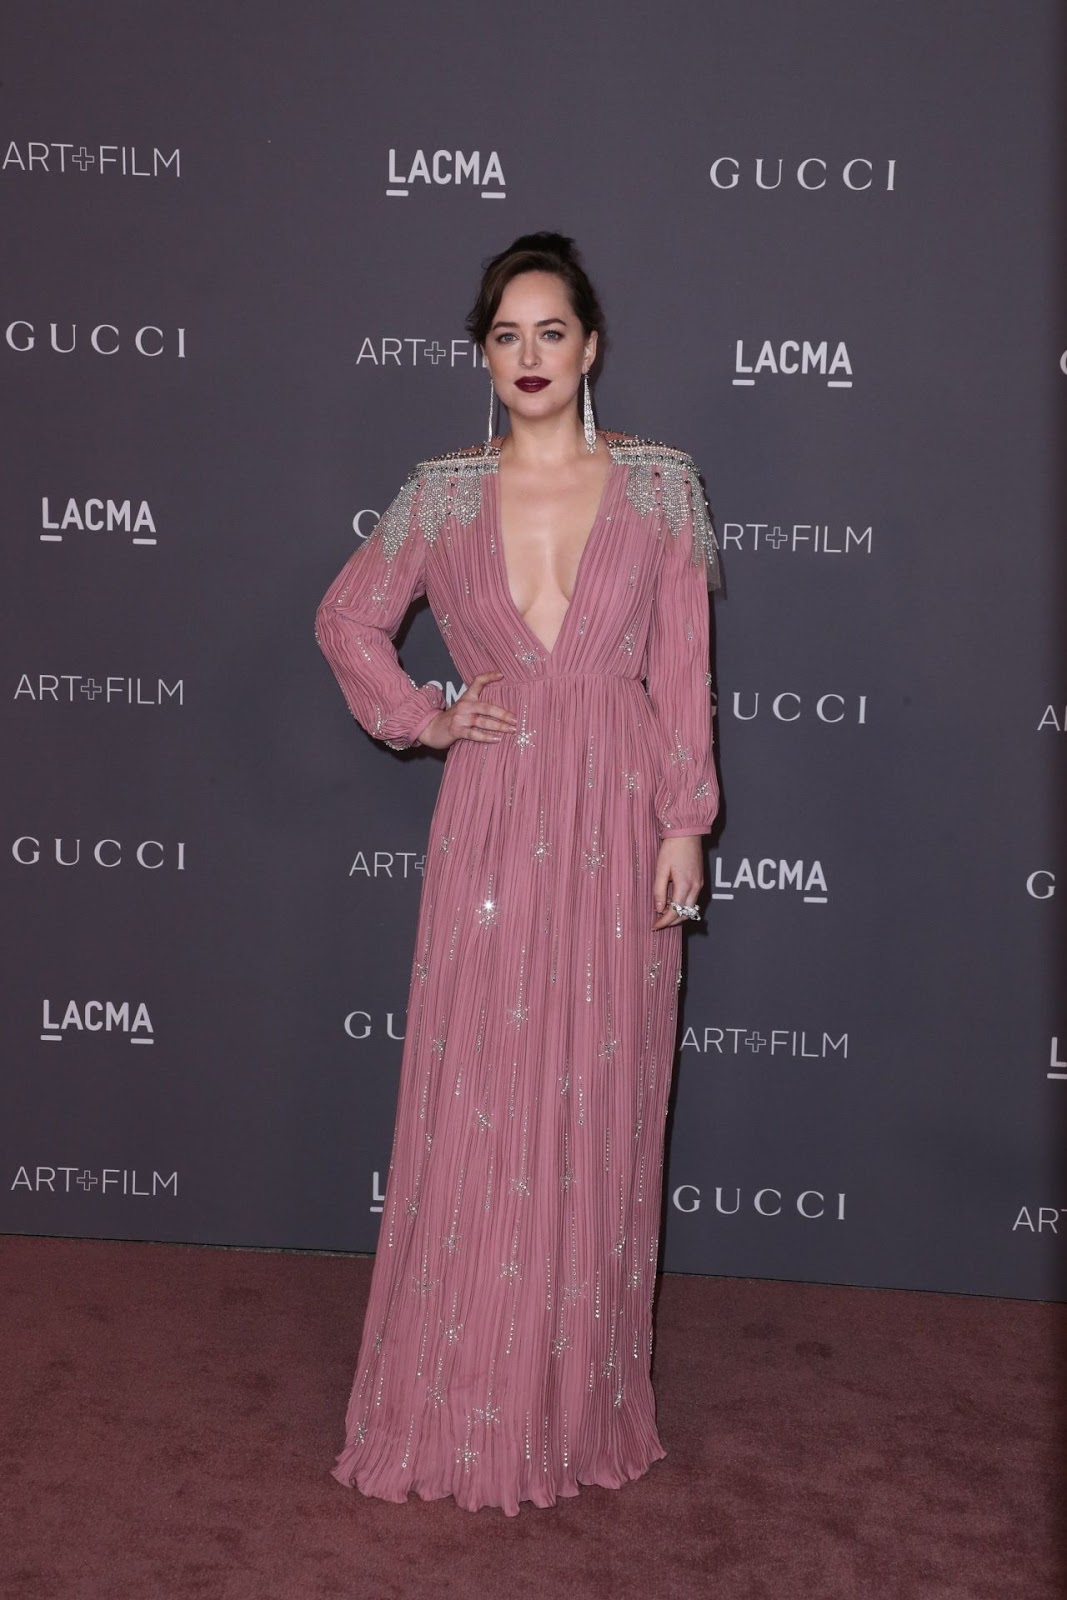 Dakota Johnson bares cleavage at the 2017 LACMA Art + Film Gala in LA